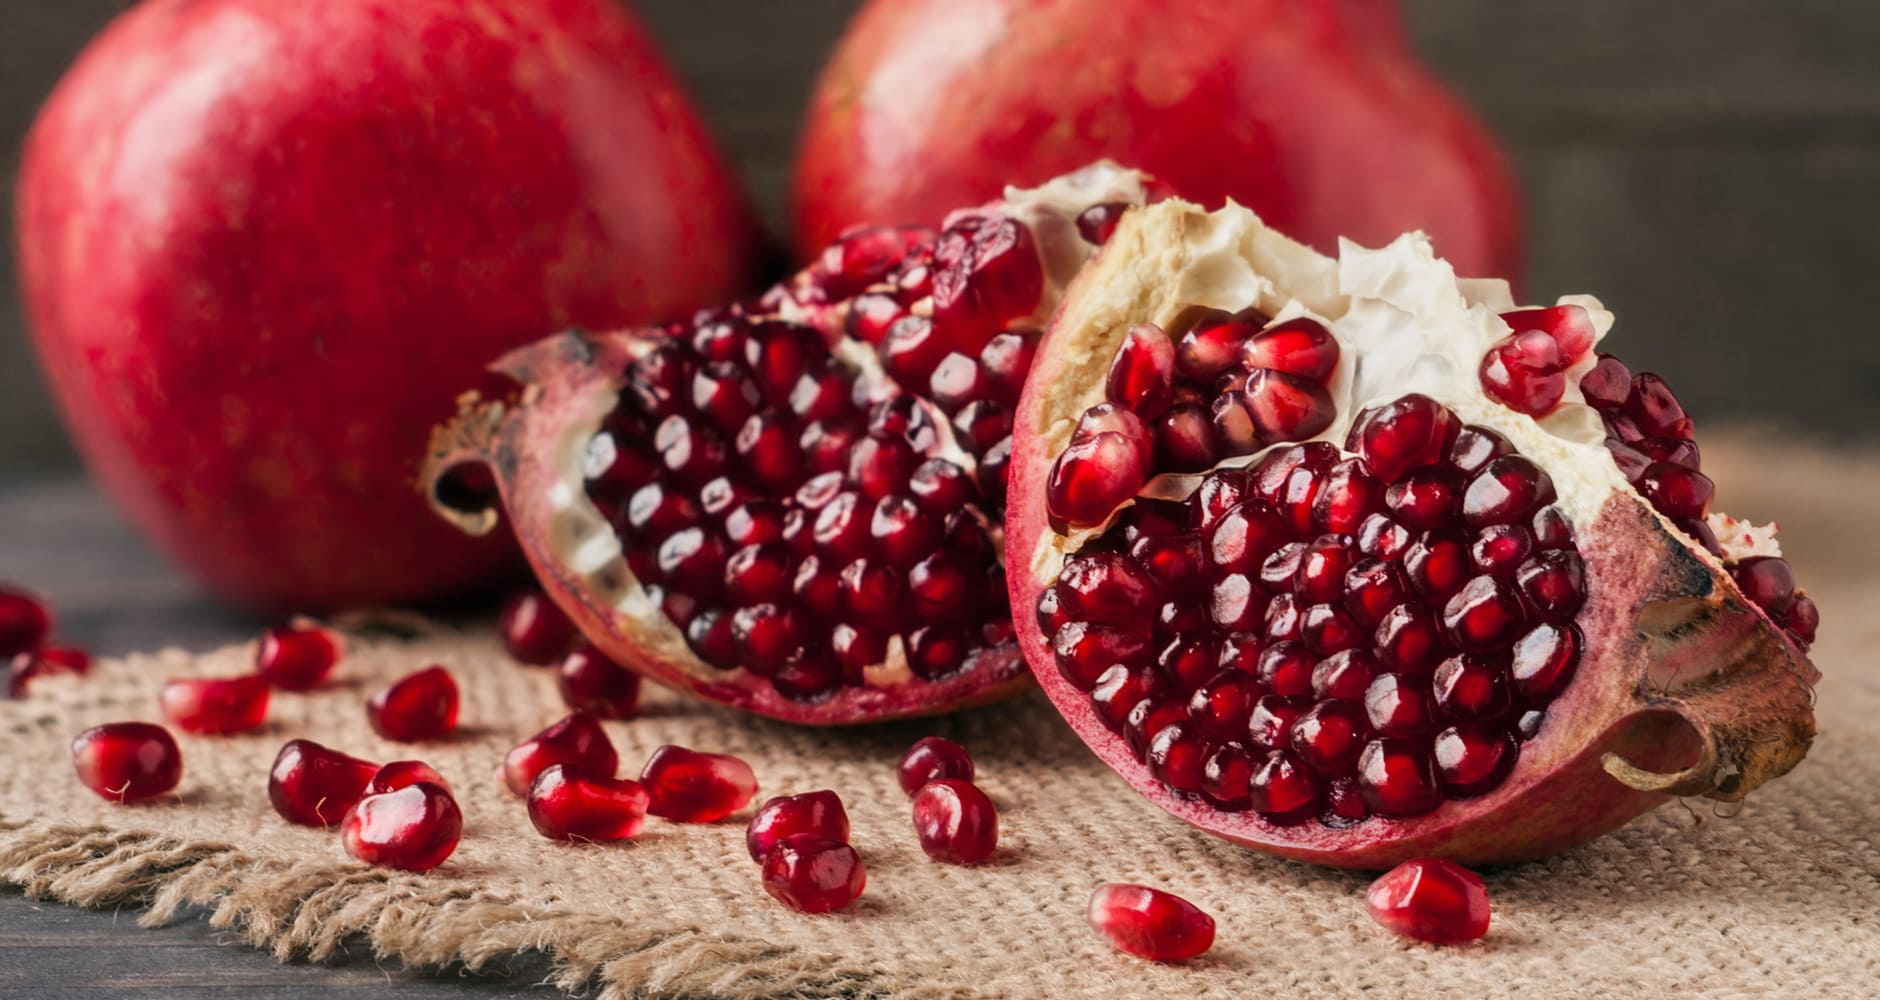 A winter superfood: pomegranate sliced in half